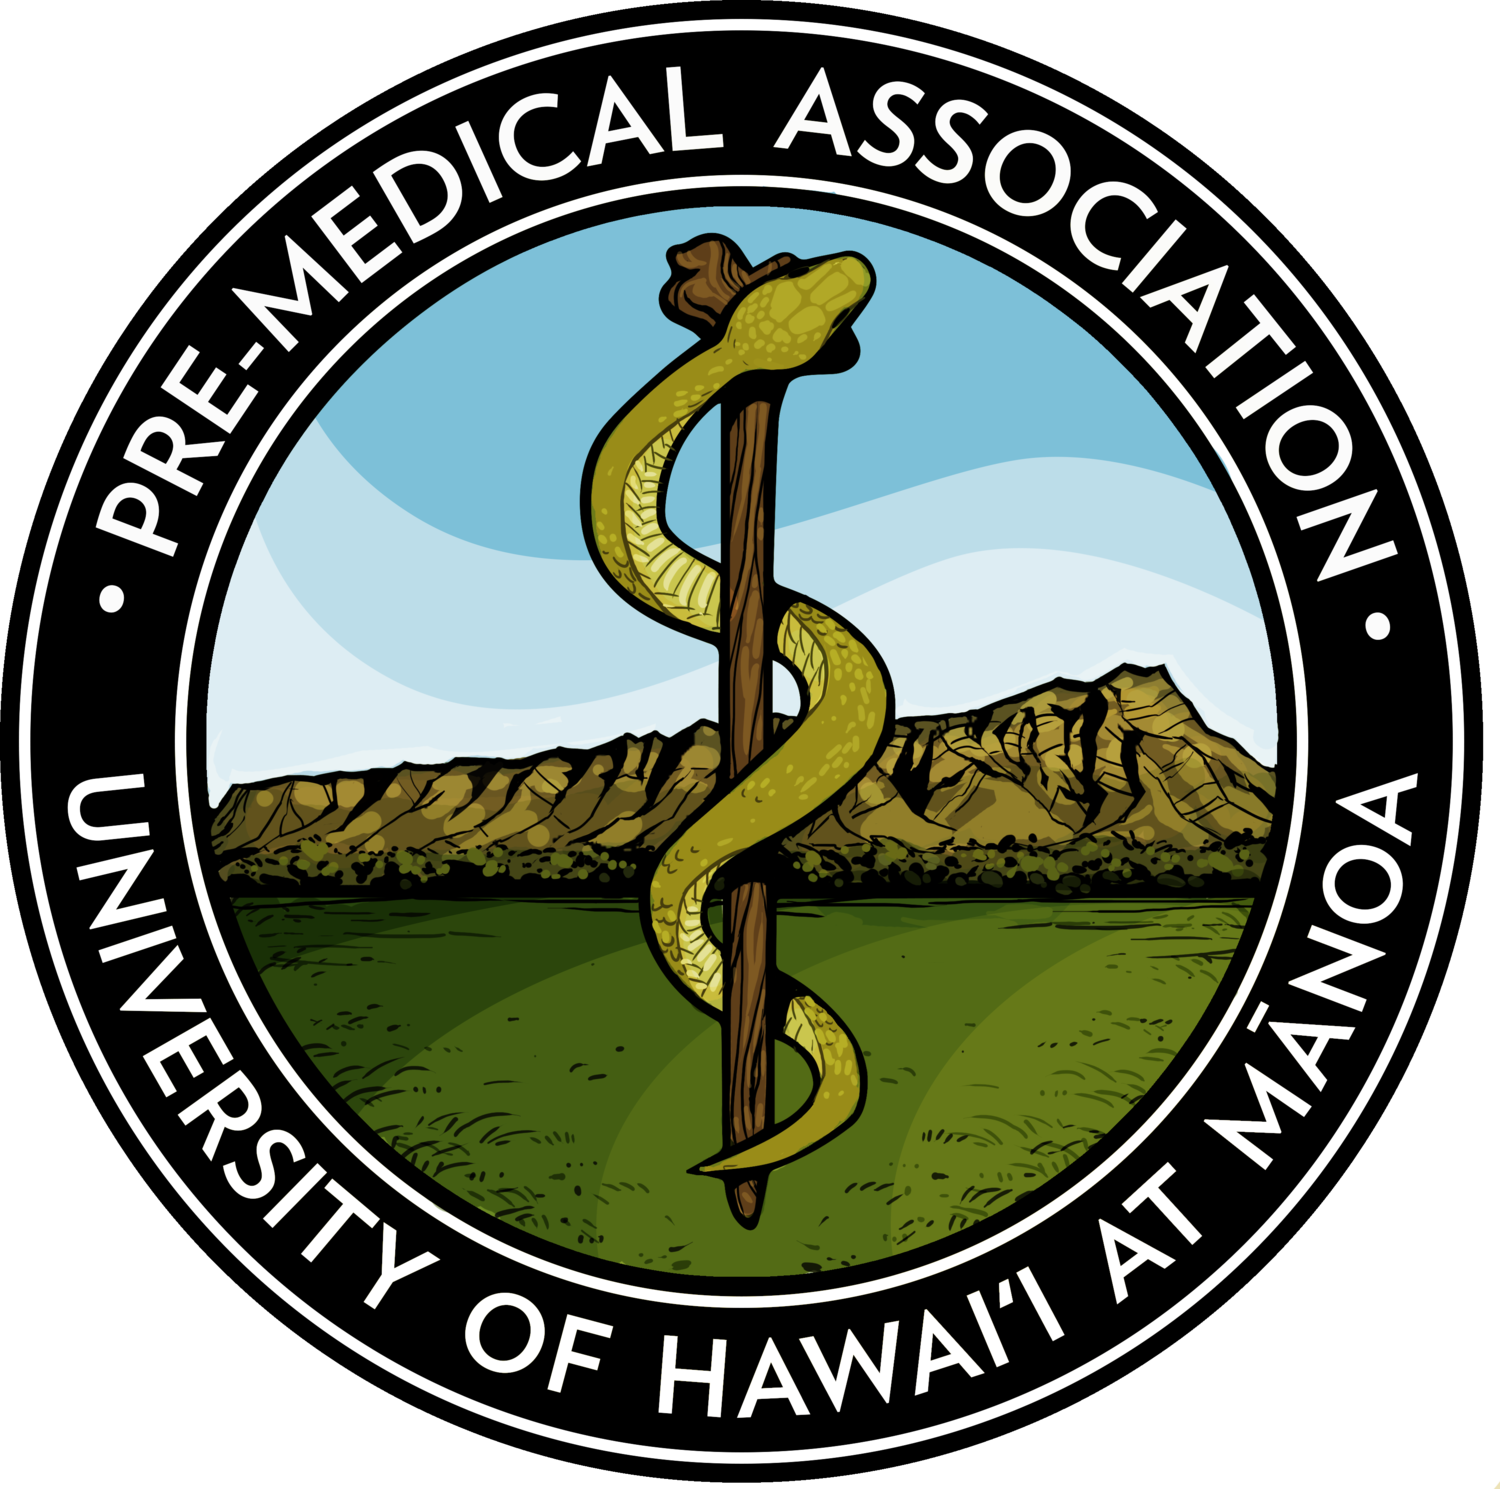 Pre-Medical Association at the University of Hawaii at Manoa